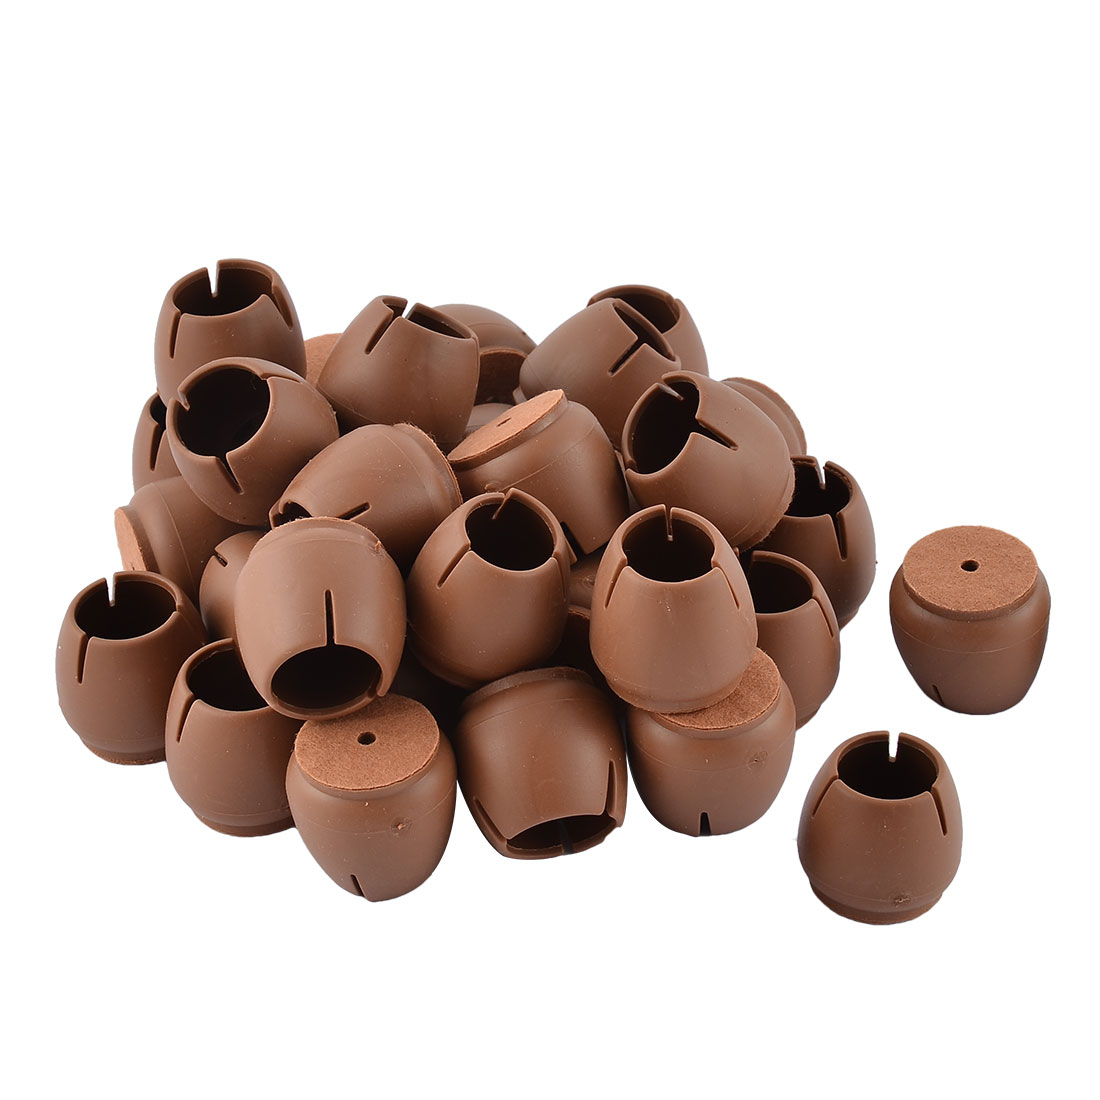 Silicone Round Bottom Furniture Leg Protective Cover Cap Tip Coffee Color 3.3 x 3.1cm 32pcs